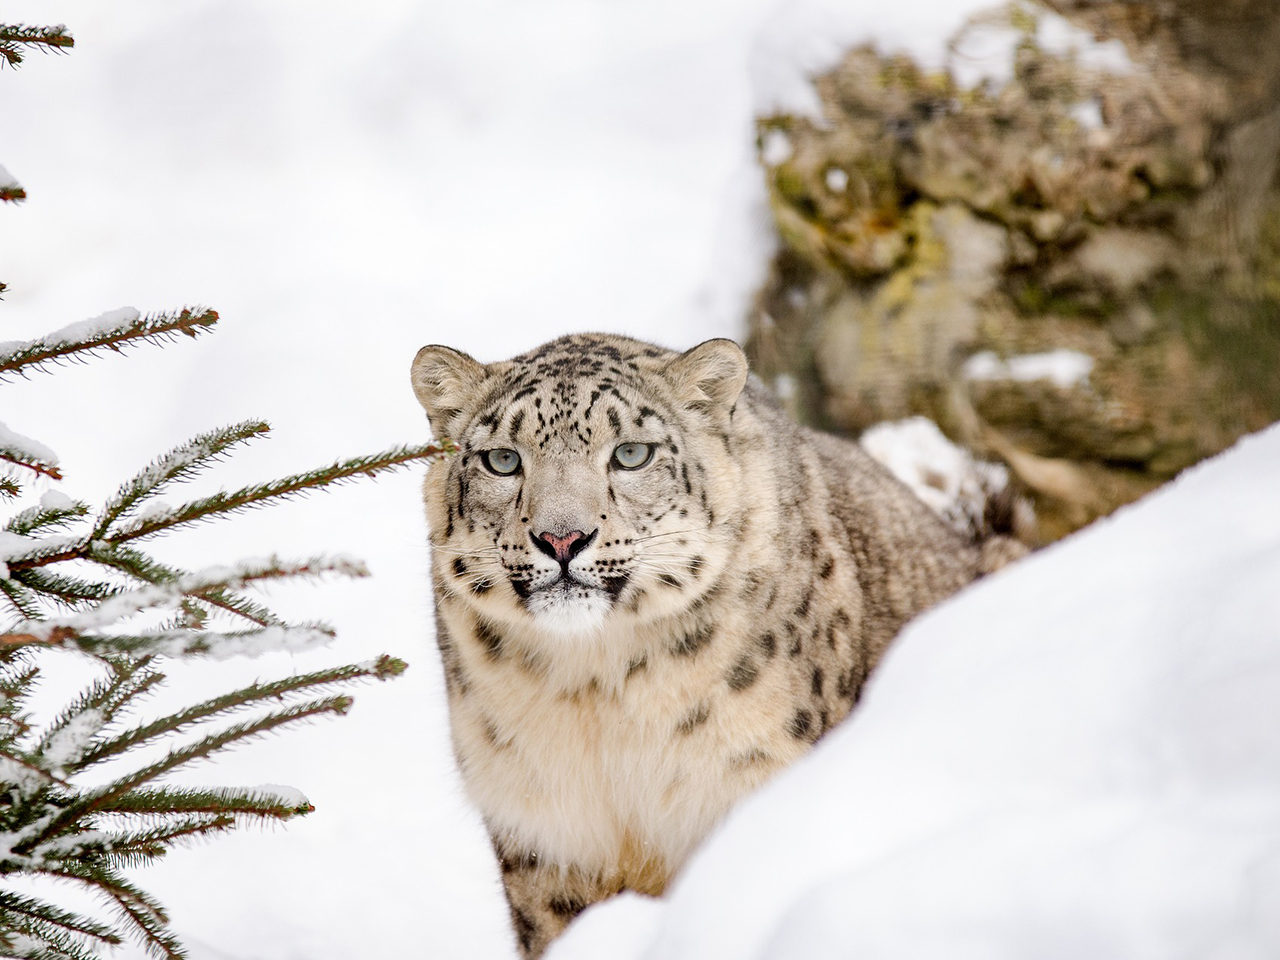 Snow Leopard Conservancy India Trust - Grant Amount: $20,000Project: Promotion of innovative grassroots measures that encourage local people to become better stewards of the endangered snow leopards, their prey and habitats.